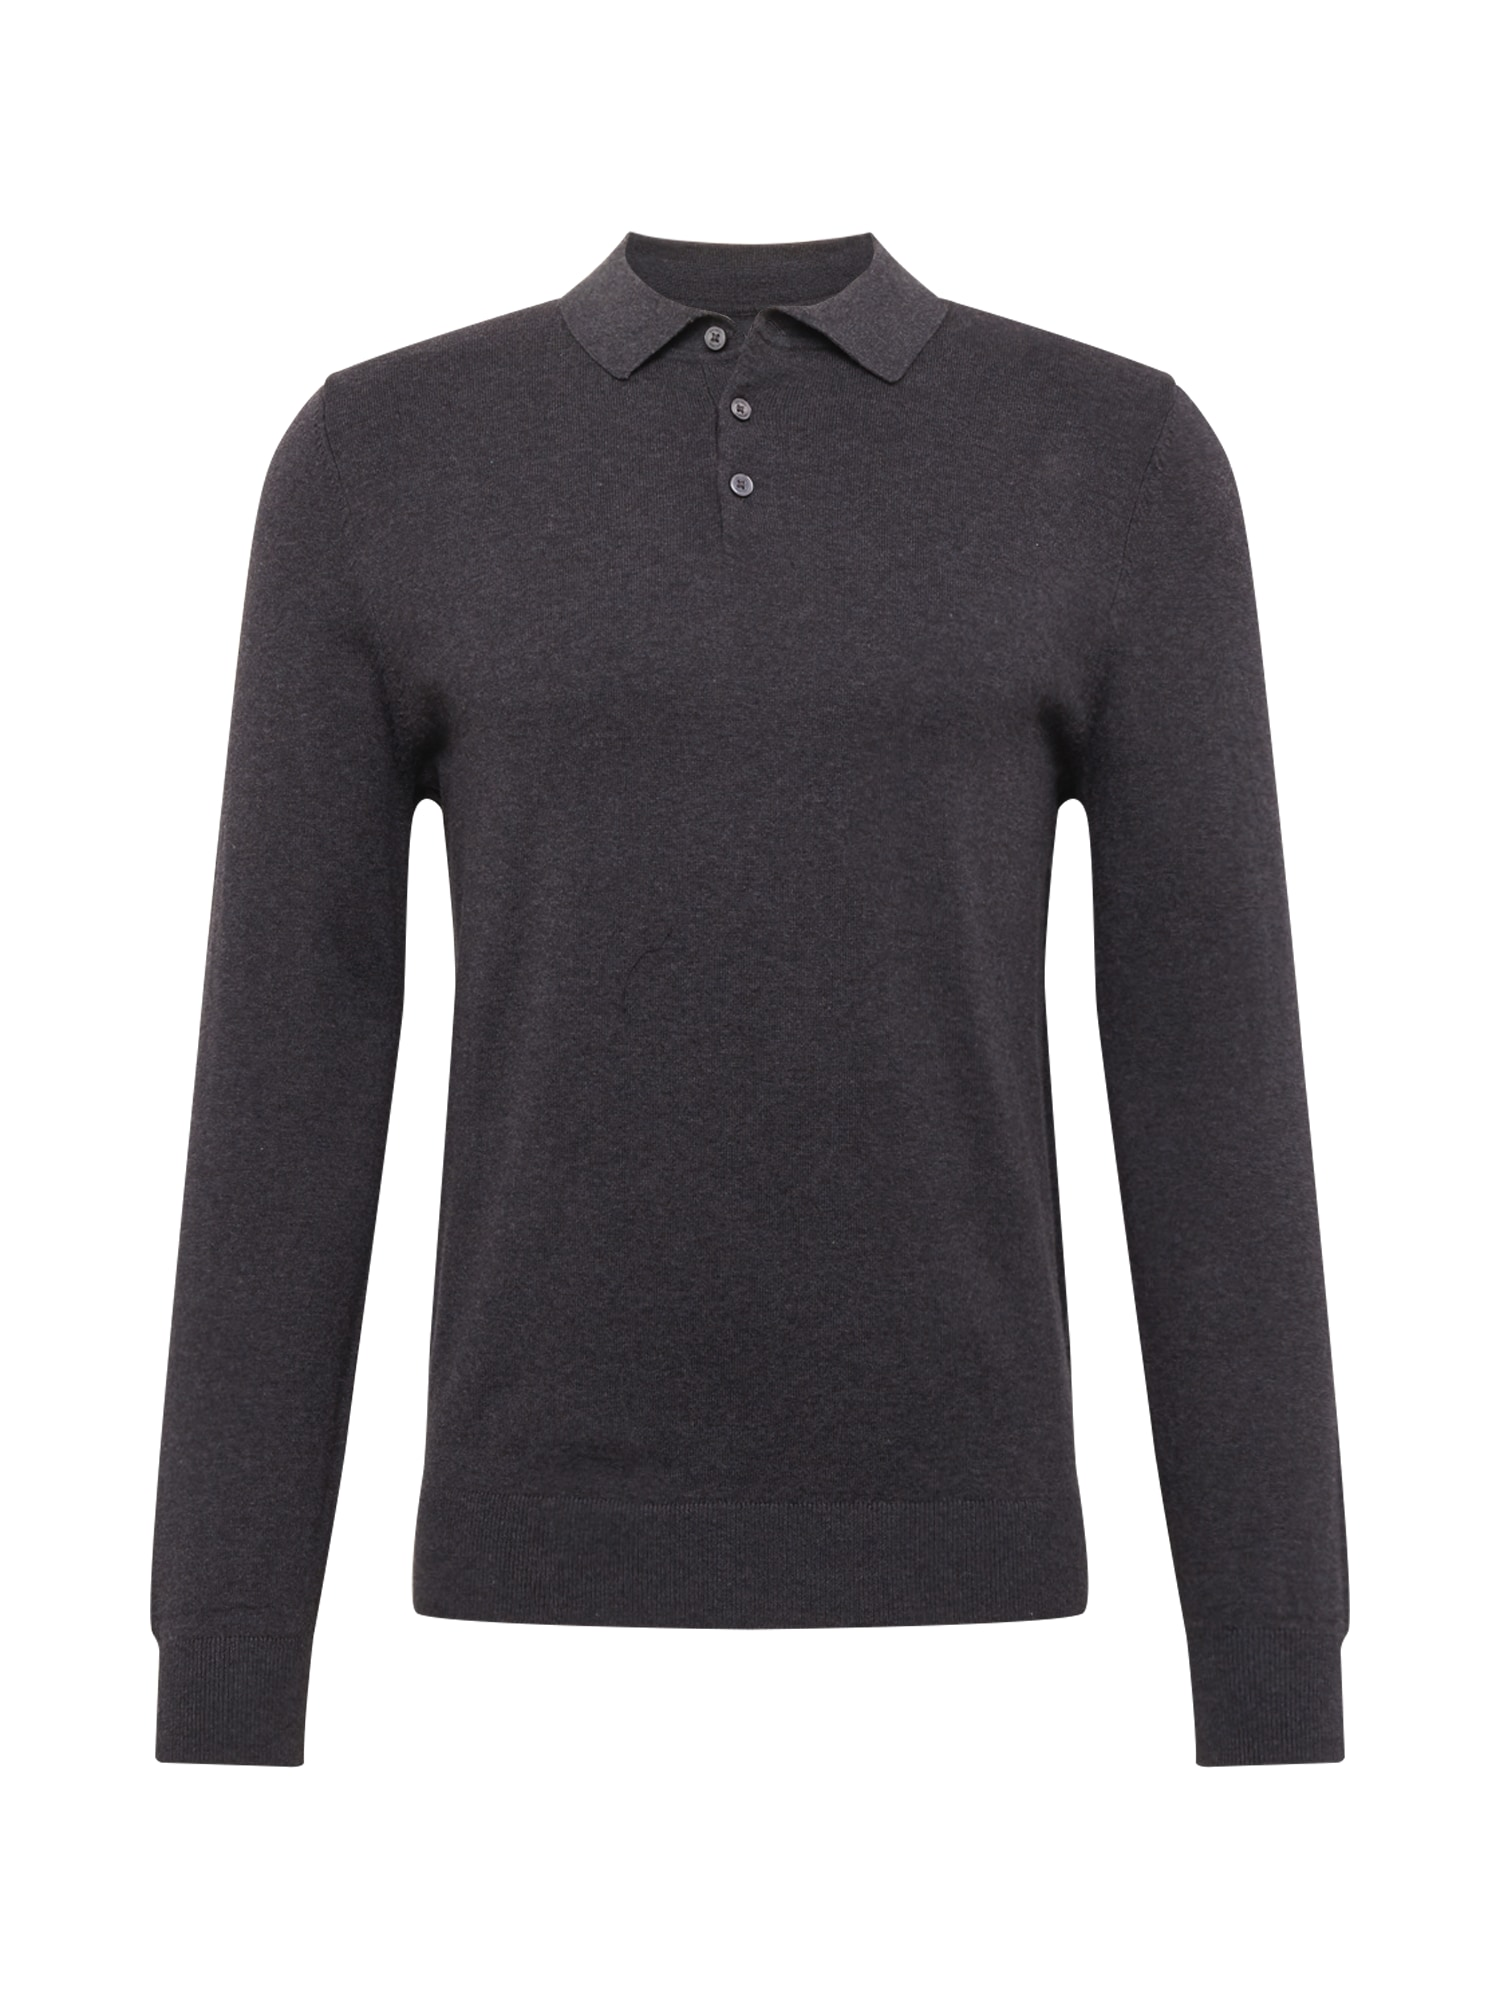 BURTON MENSWEAR LONDON Megztinis 'core polo charcoal' pilka